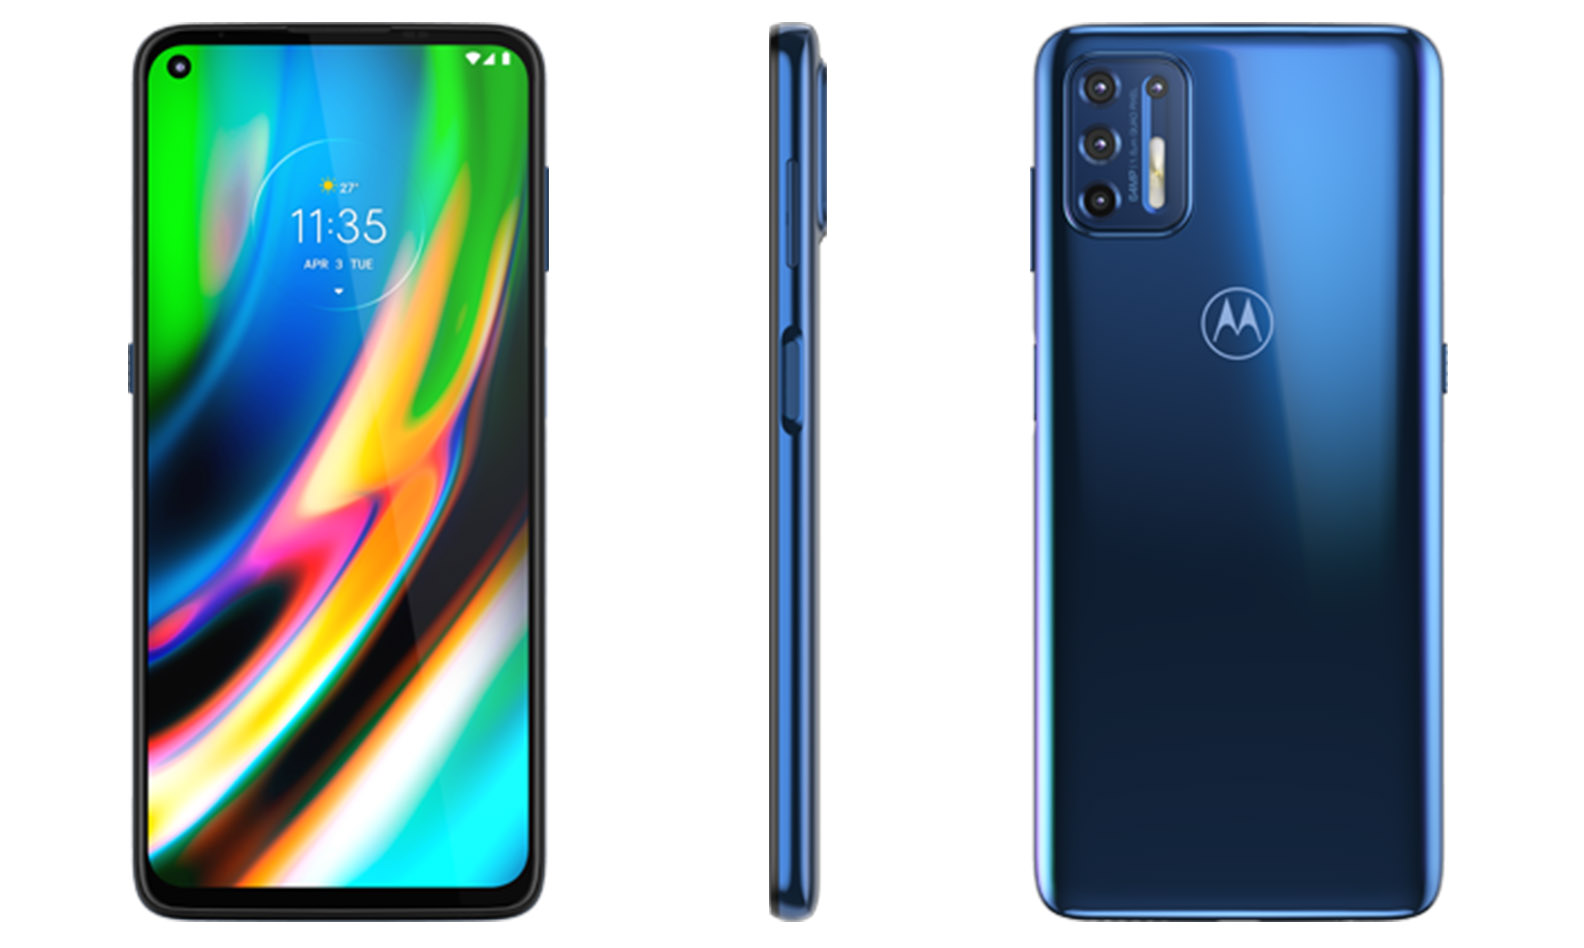 Motorola's budget G9 Plus leaks with a 64-megapixel camera and big battery